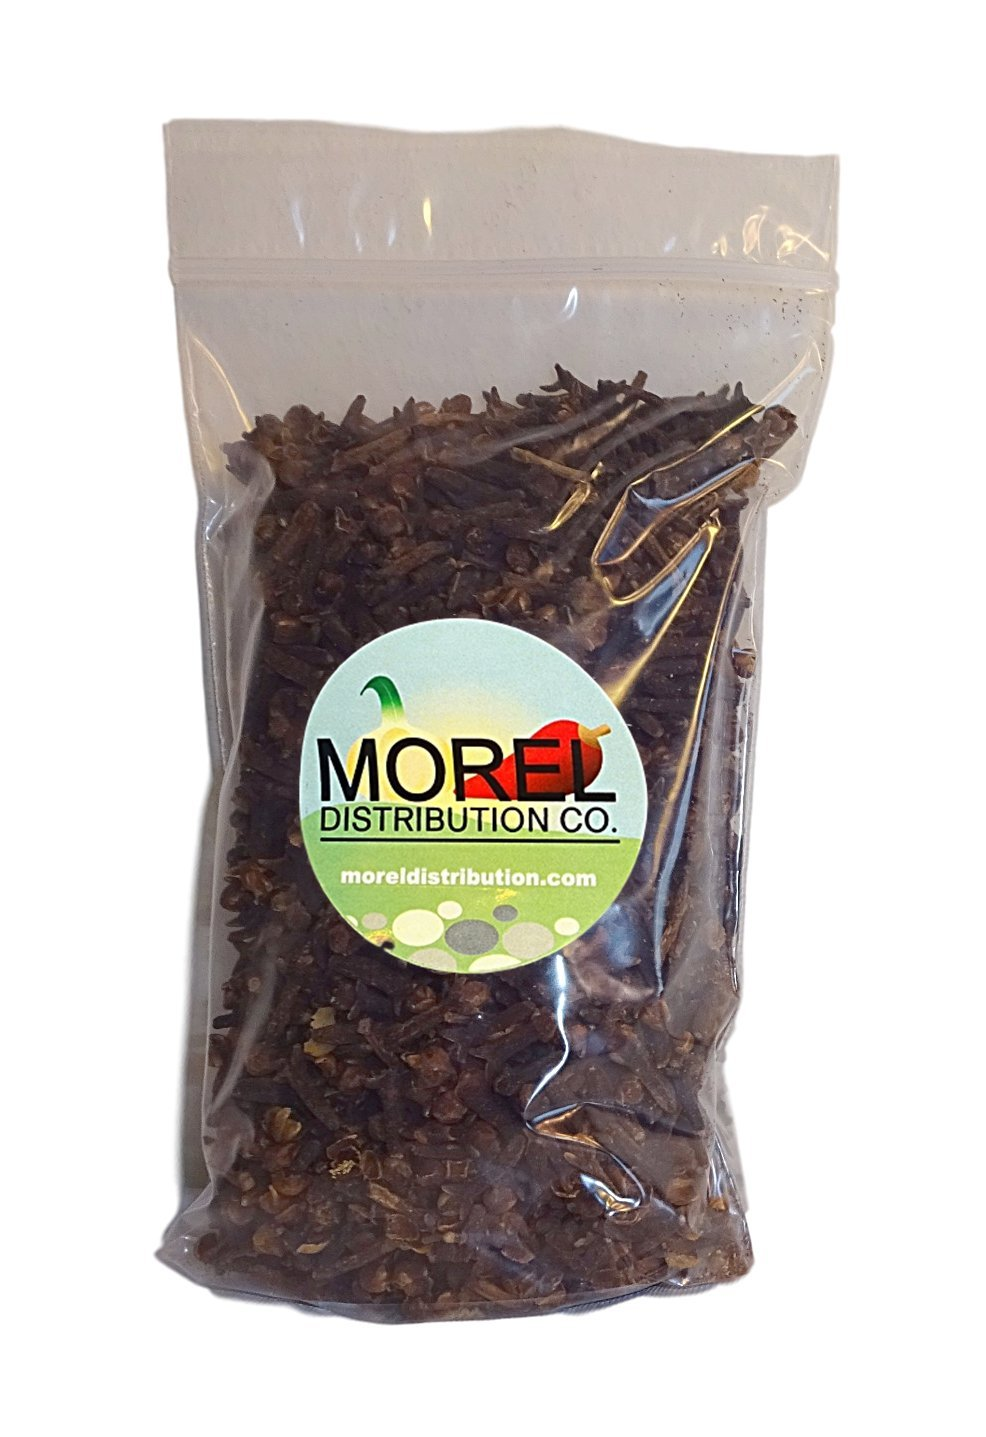 Amazon.com : Whole Cloves (Clavo de Olor) Weights: 2 Oz, 4 Oz, 6 Oz, 8 Oz, 12 Oz, & 1 Lb (2 OZ) : Grocery & Gourmet Food